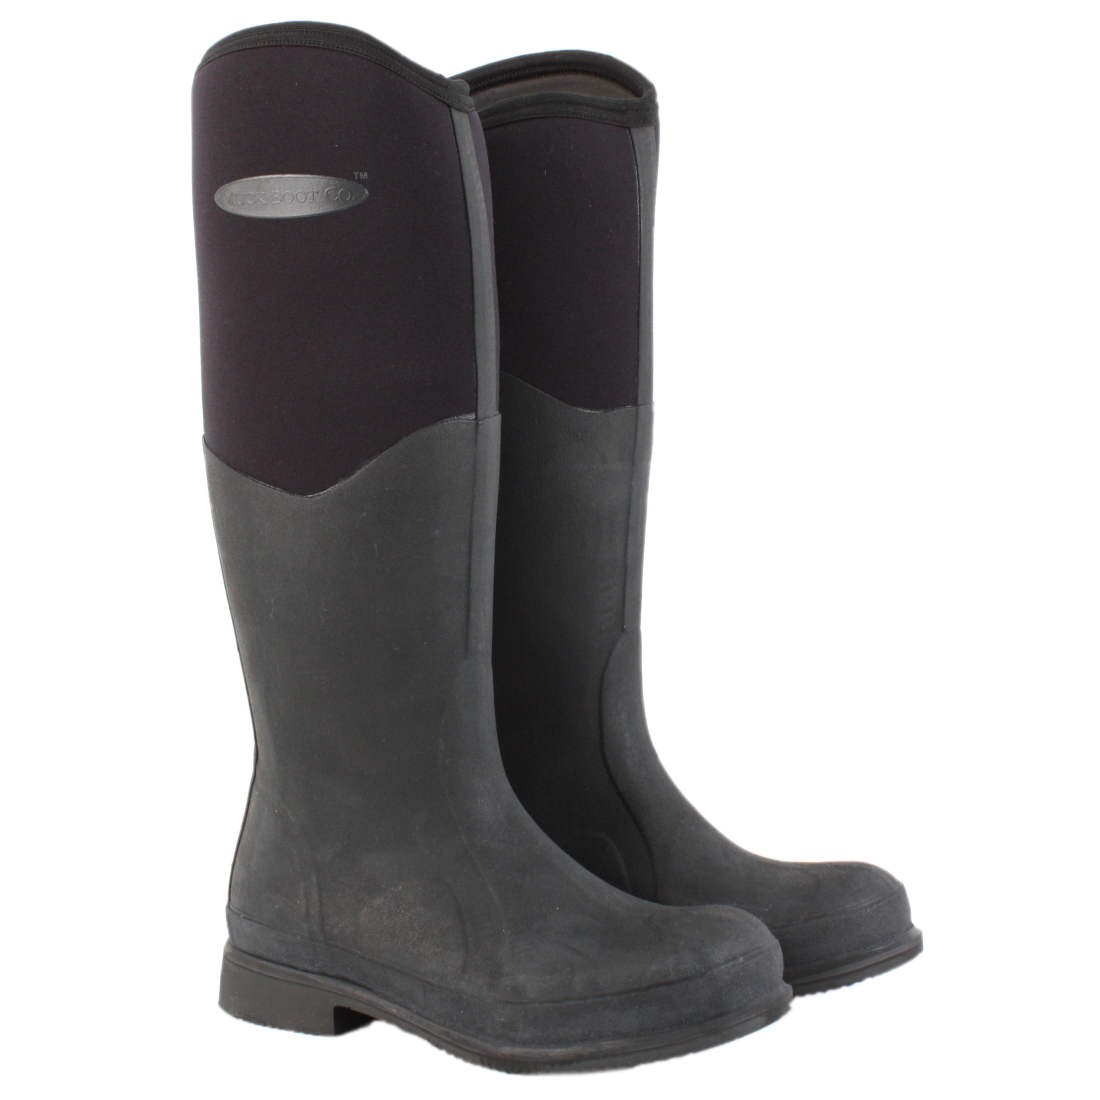 Muck Boot Tyne Riding Wellington Boots - Black - Redpost Equestrian